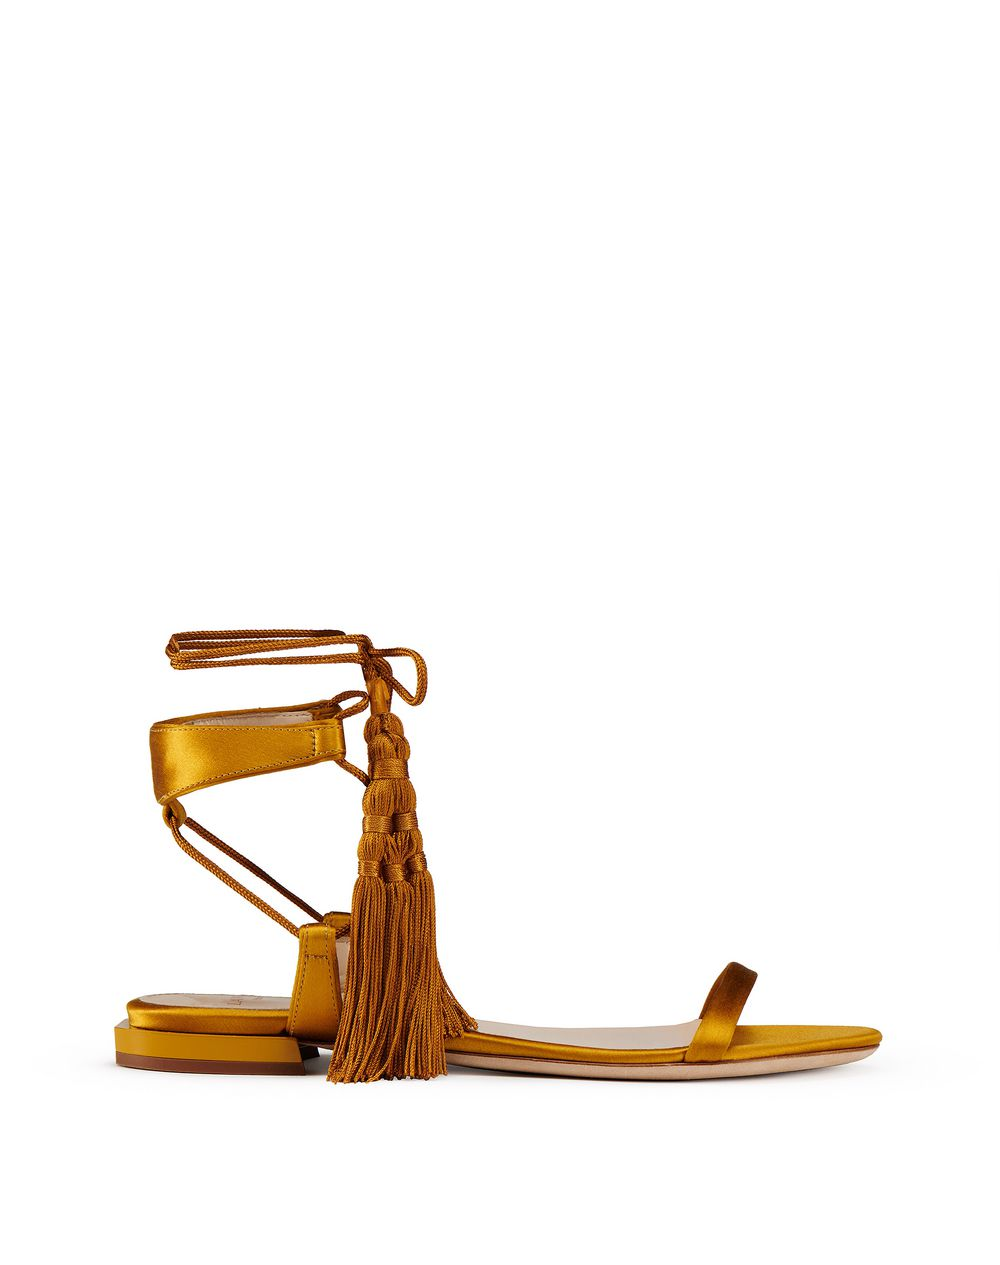 FLAT SATIN SANDAL WITH TASSEL - Lanvin